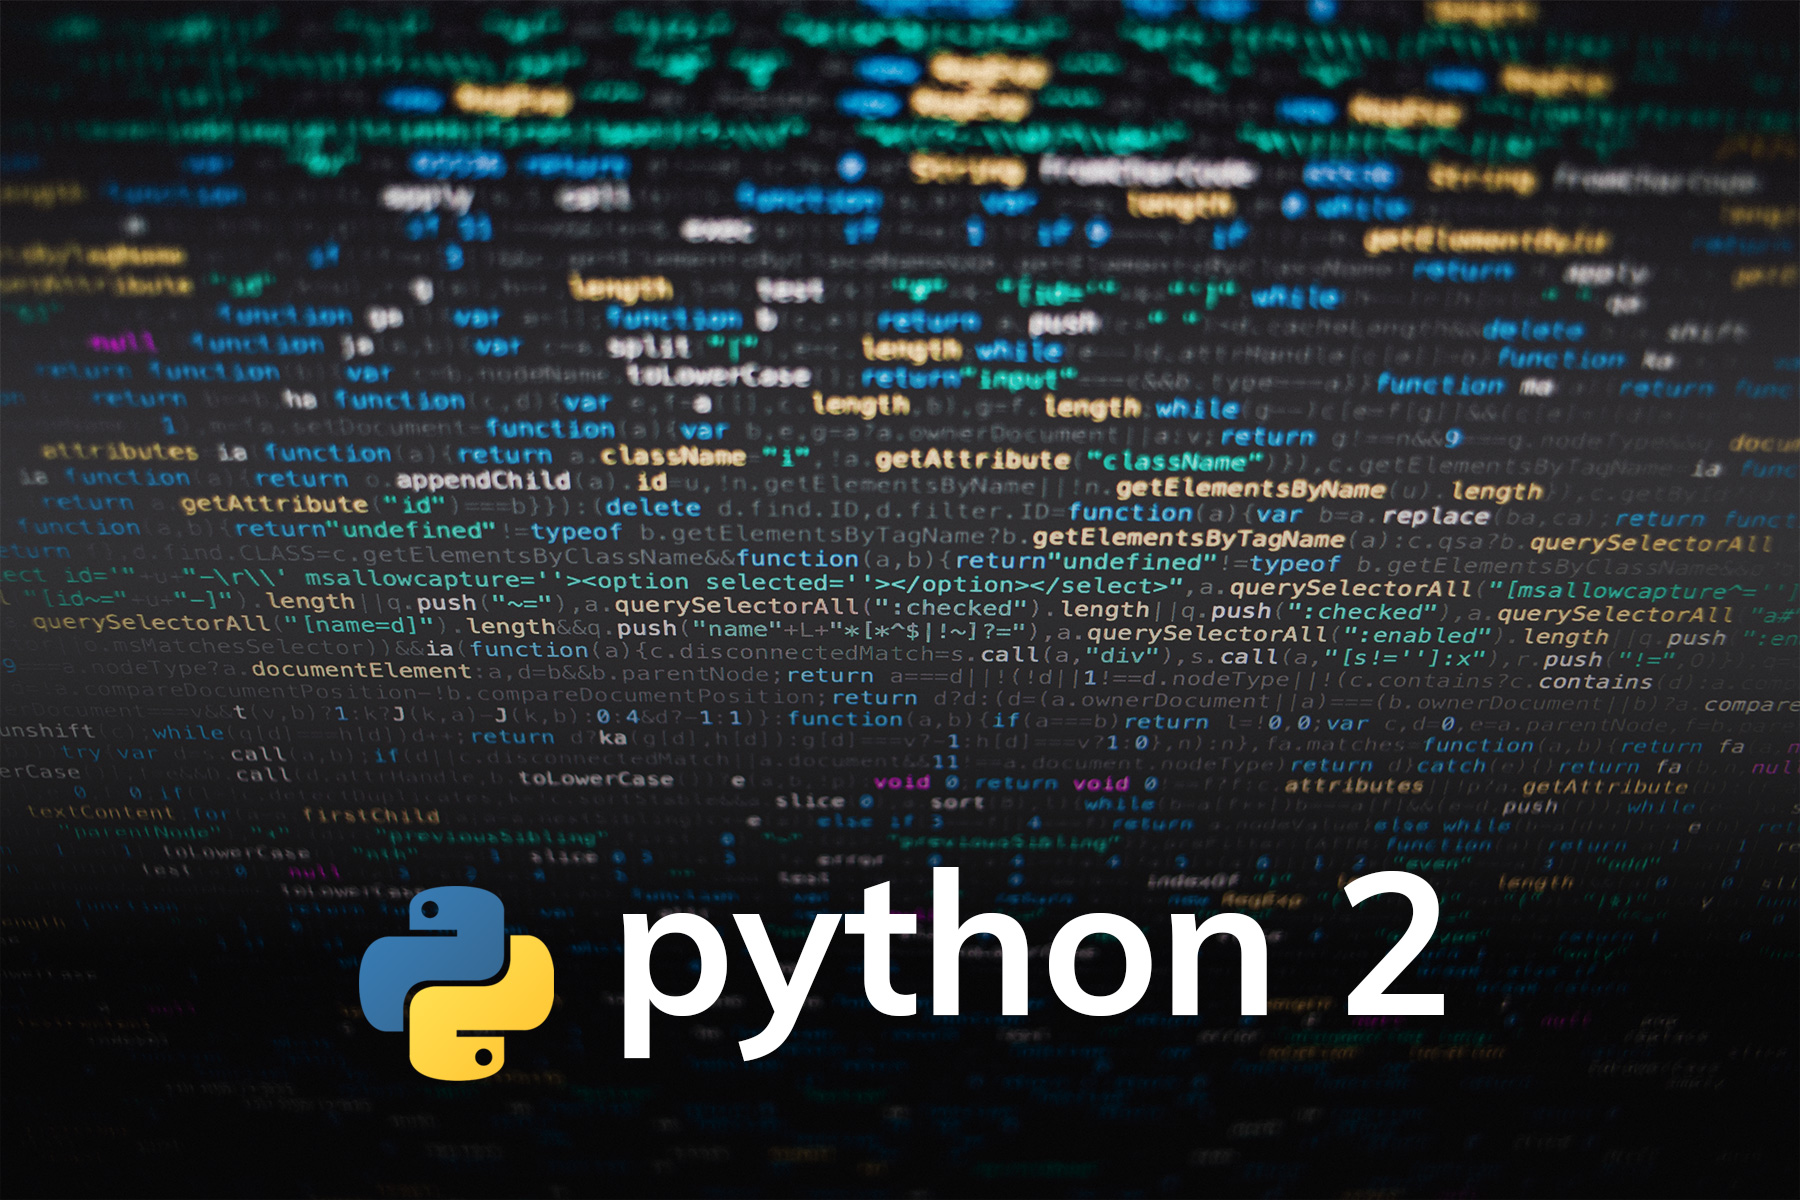 Python 2: The End Of An Era